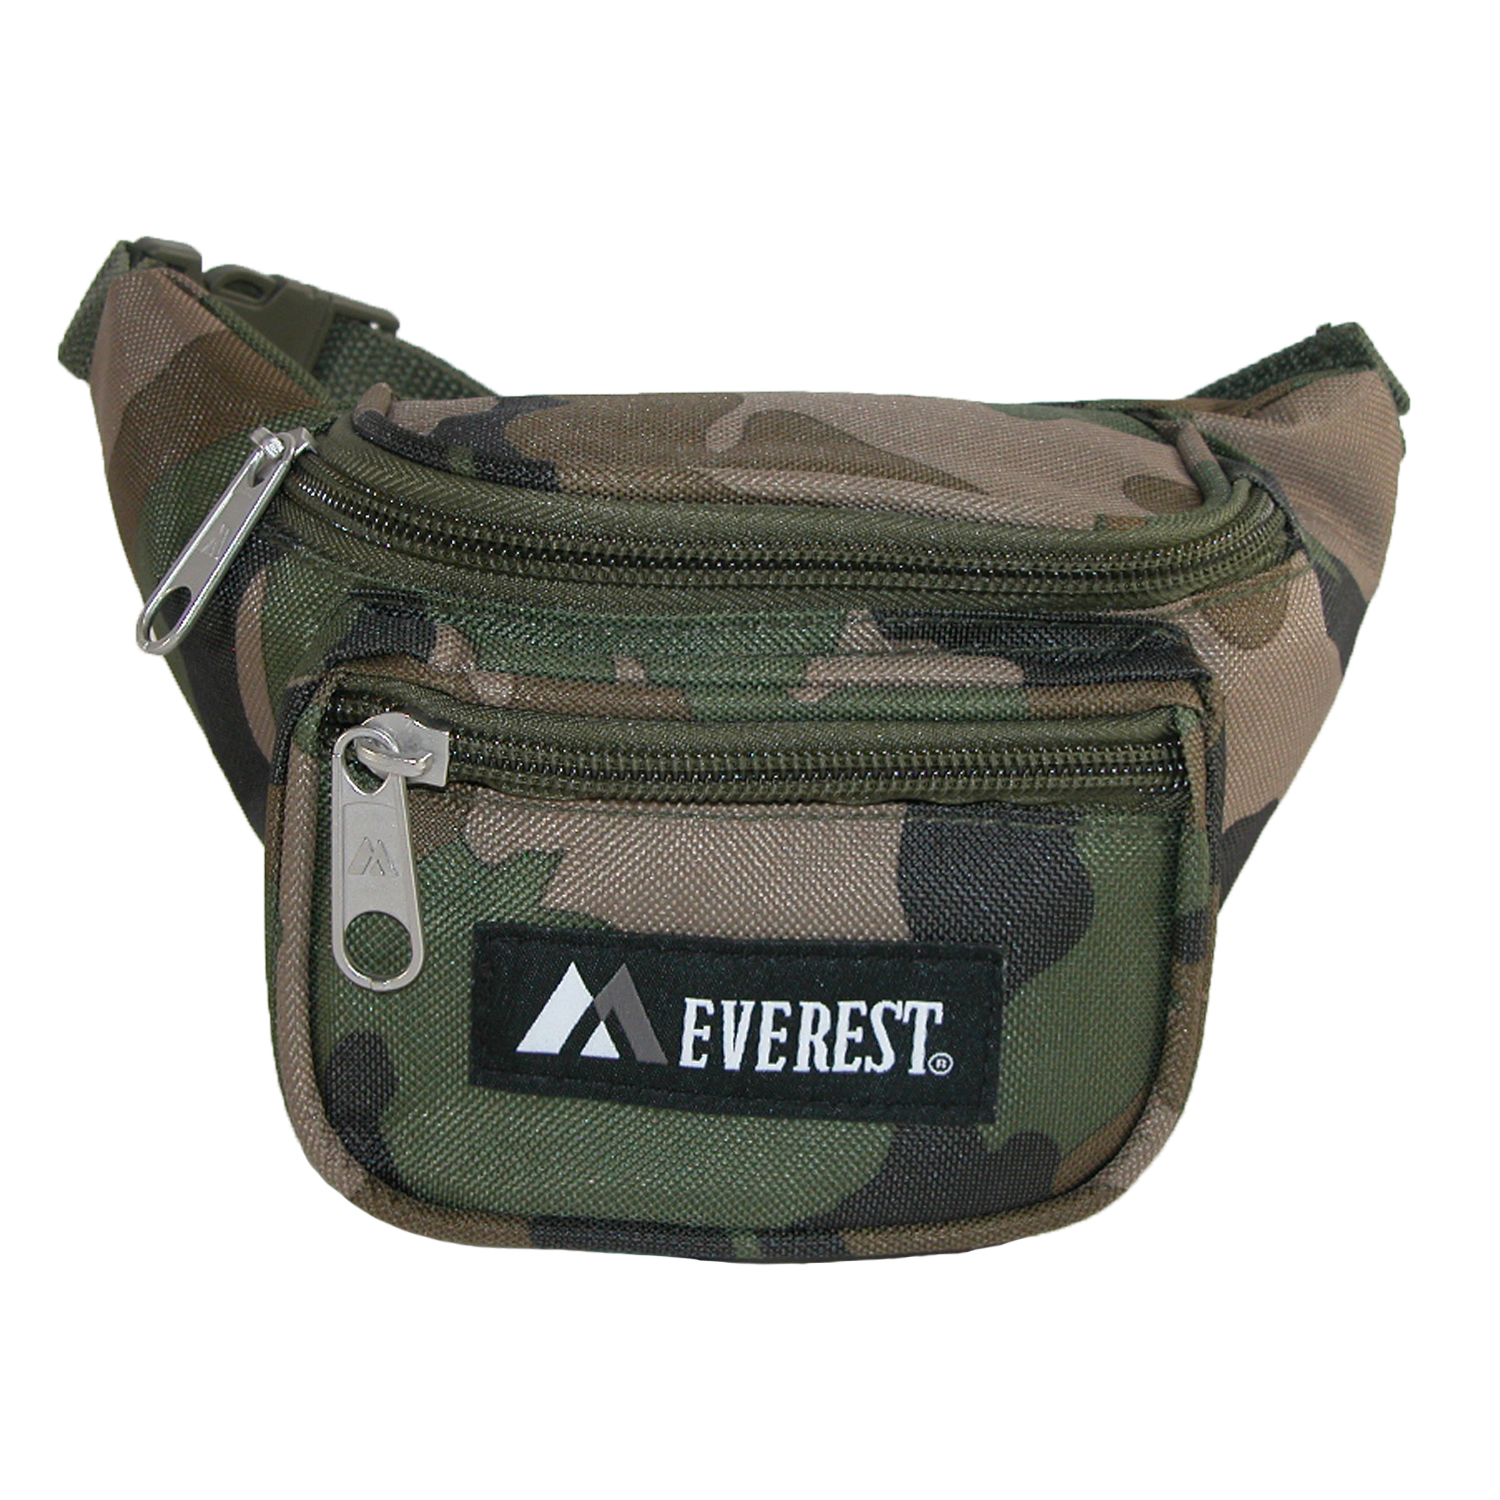 Everest  Fabric Woodland Camouflage Small Pack